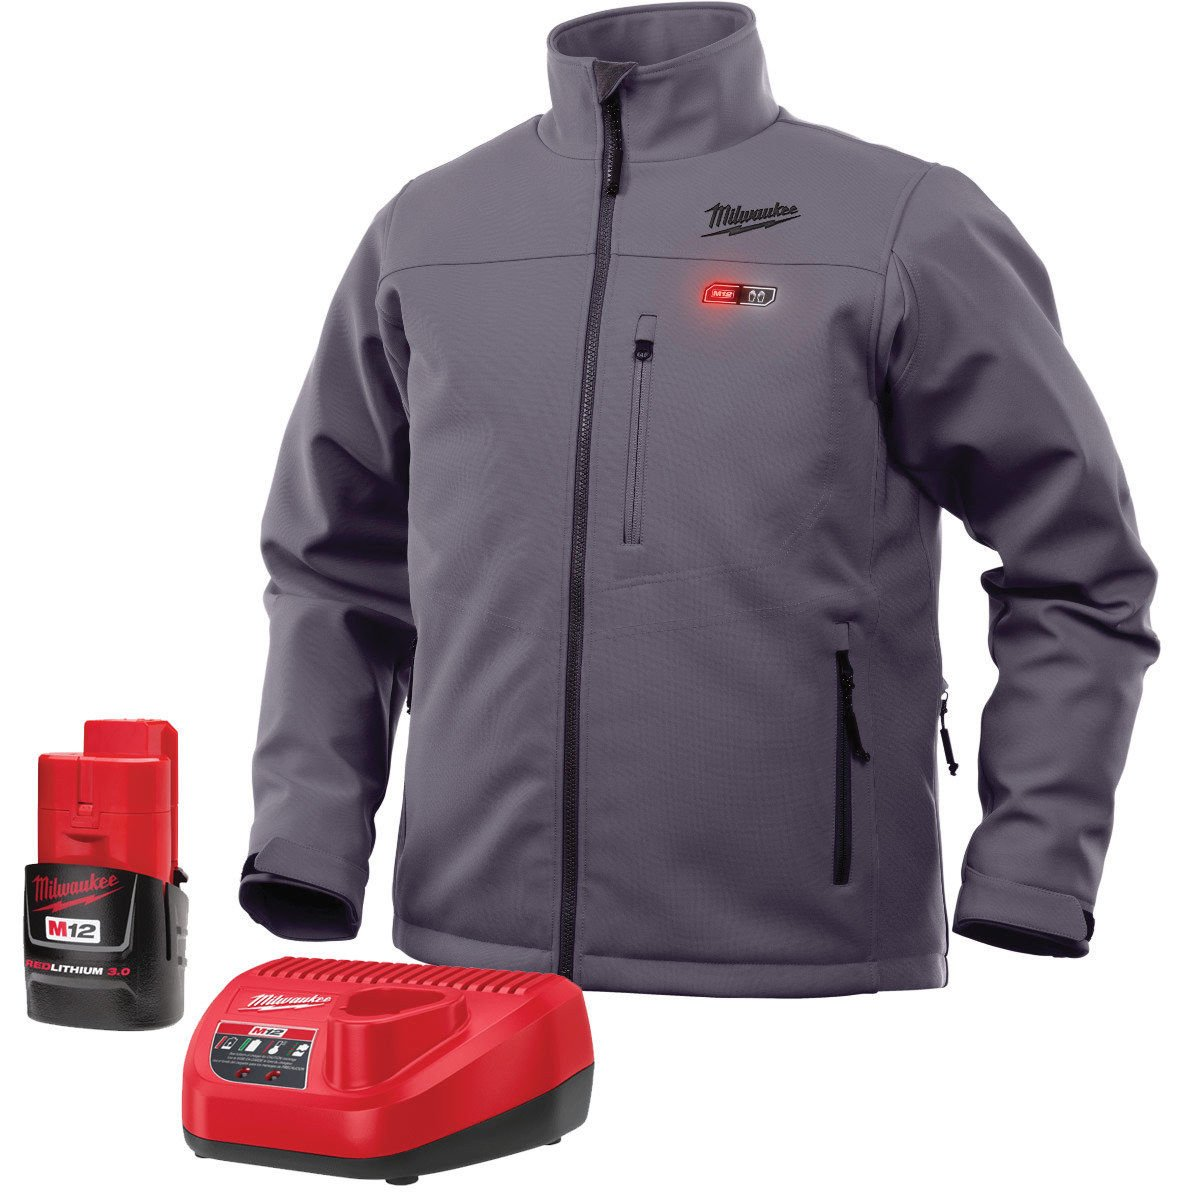 Milwaukee M12 Heated Jacket Kit Battery And Charger Included Wiring Medium Gray